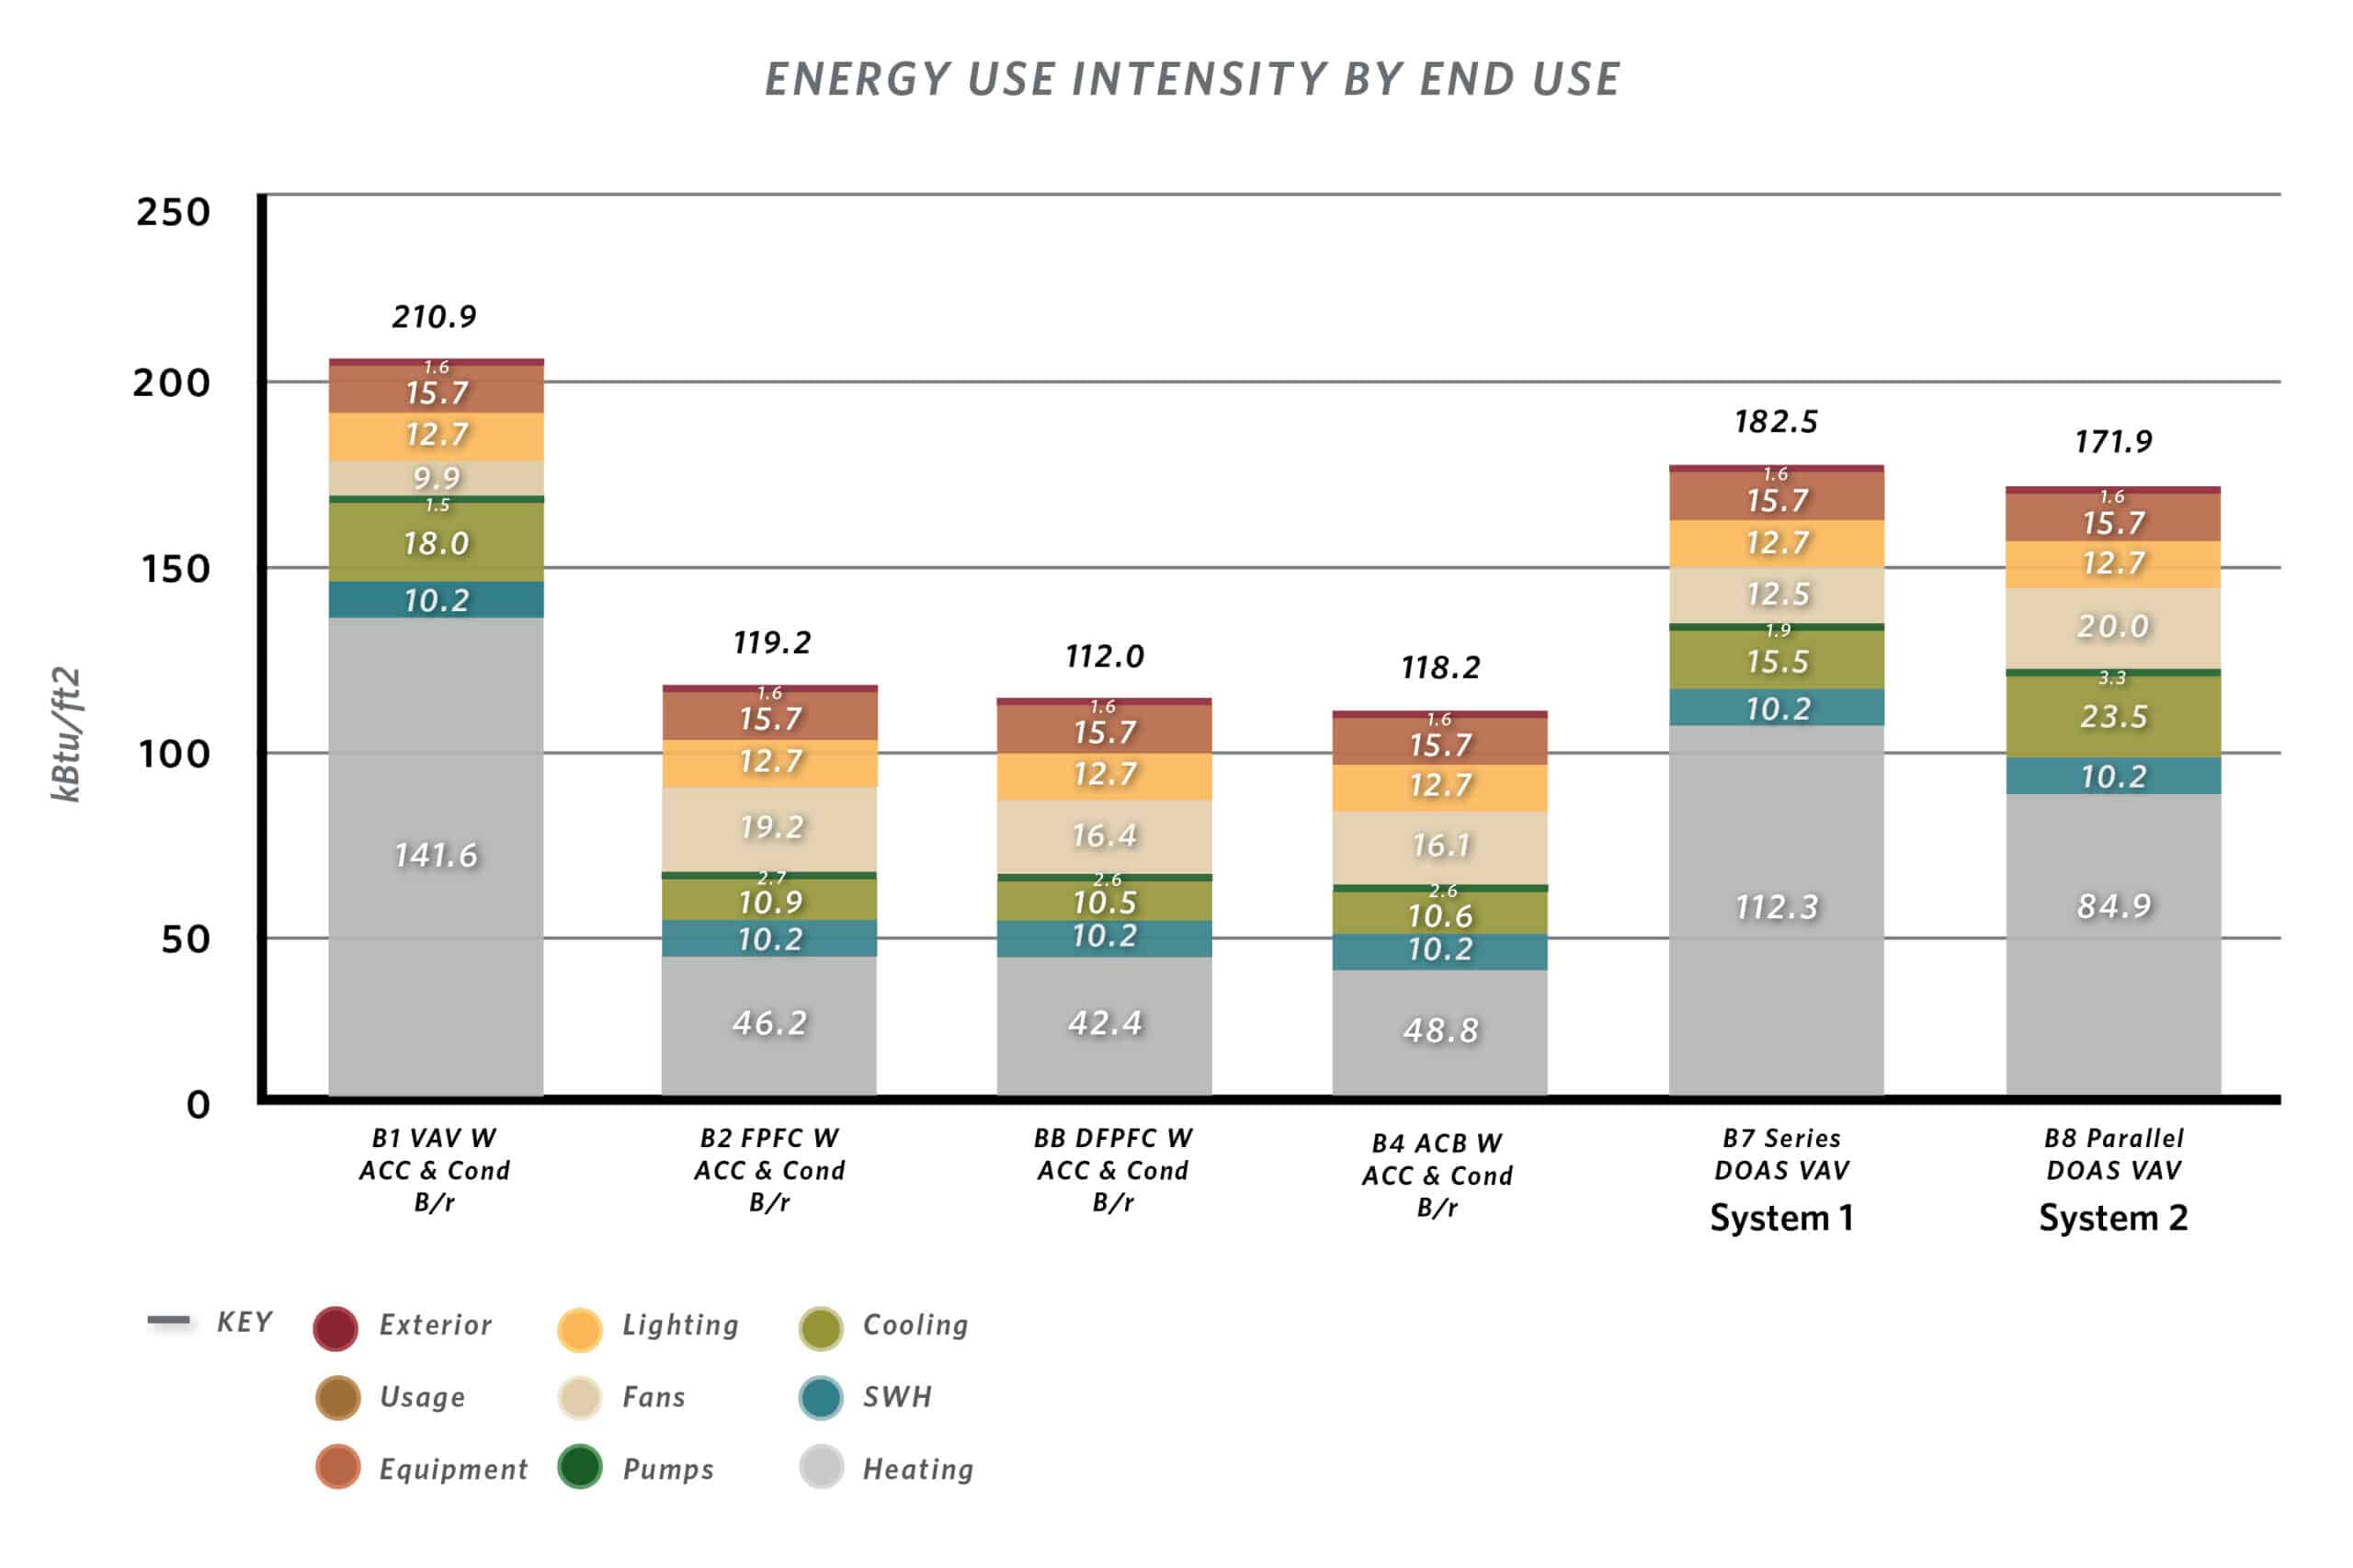 A bar chart showing Energy Use Intensity by End Use